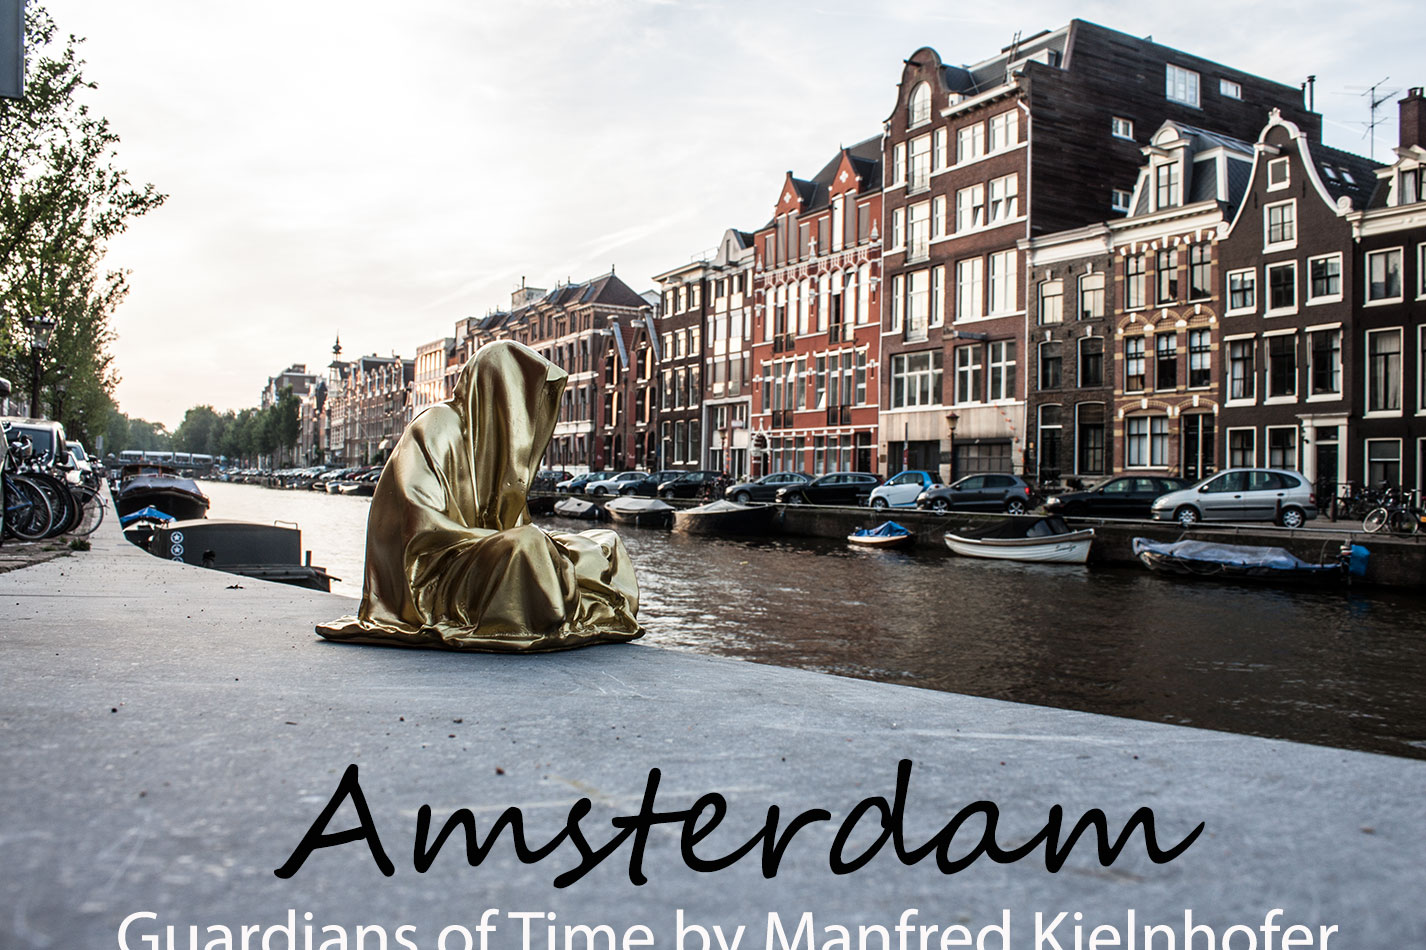 amstadam-netherlands-guardians-of-time-manfred-kielnhofer-public-modern-contemporary-art-fine-arts-sculpture-design-streat-art-2094